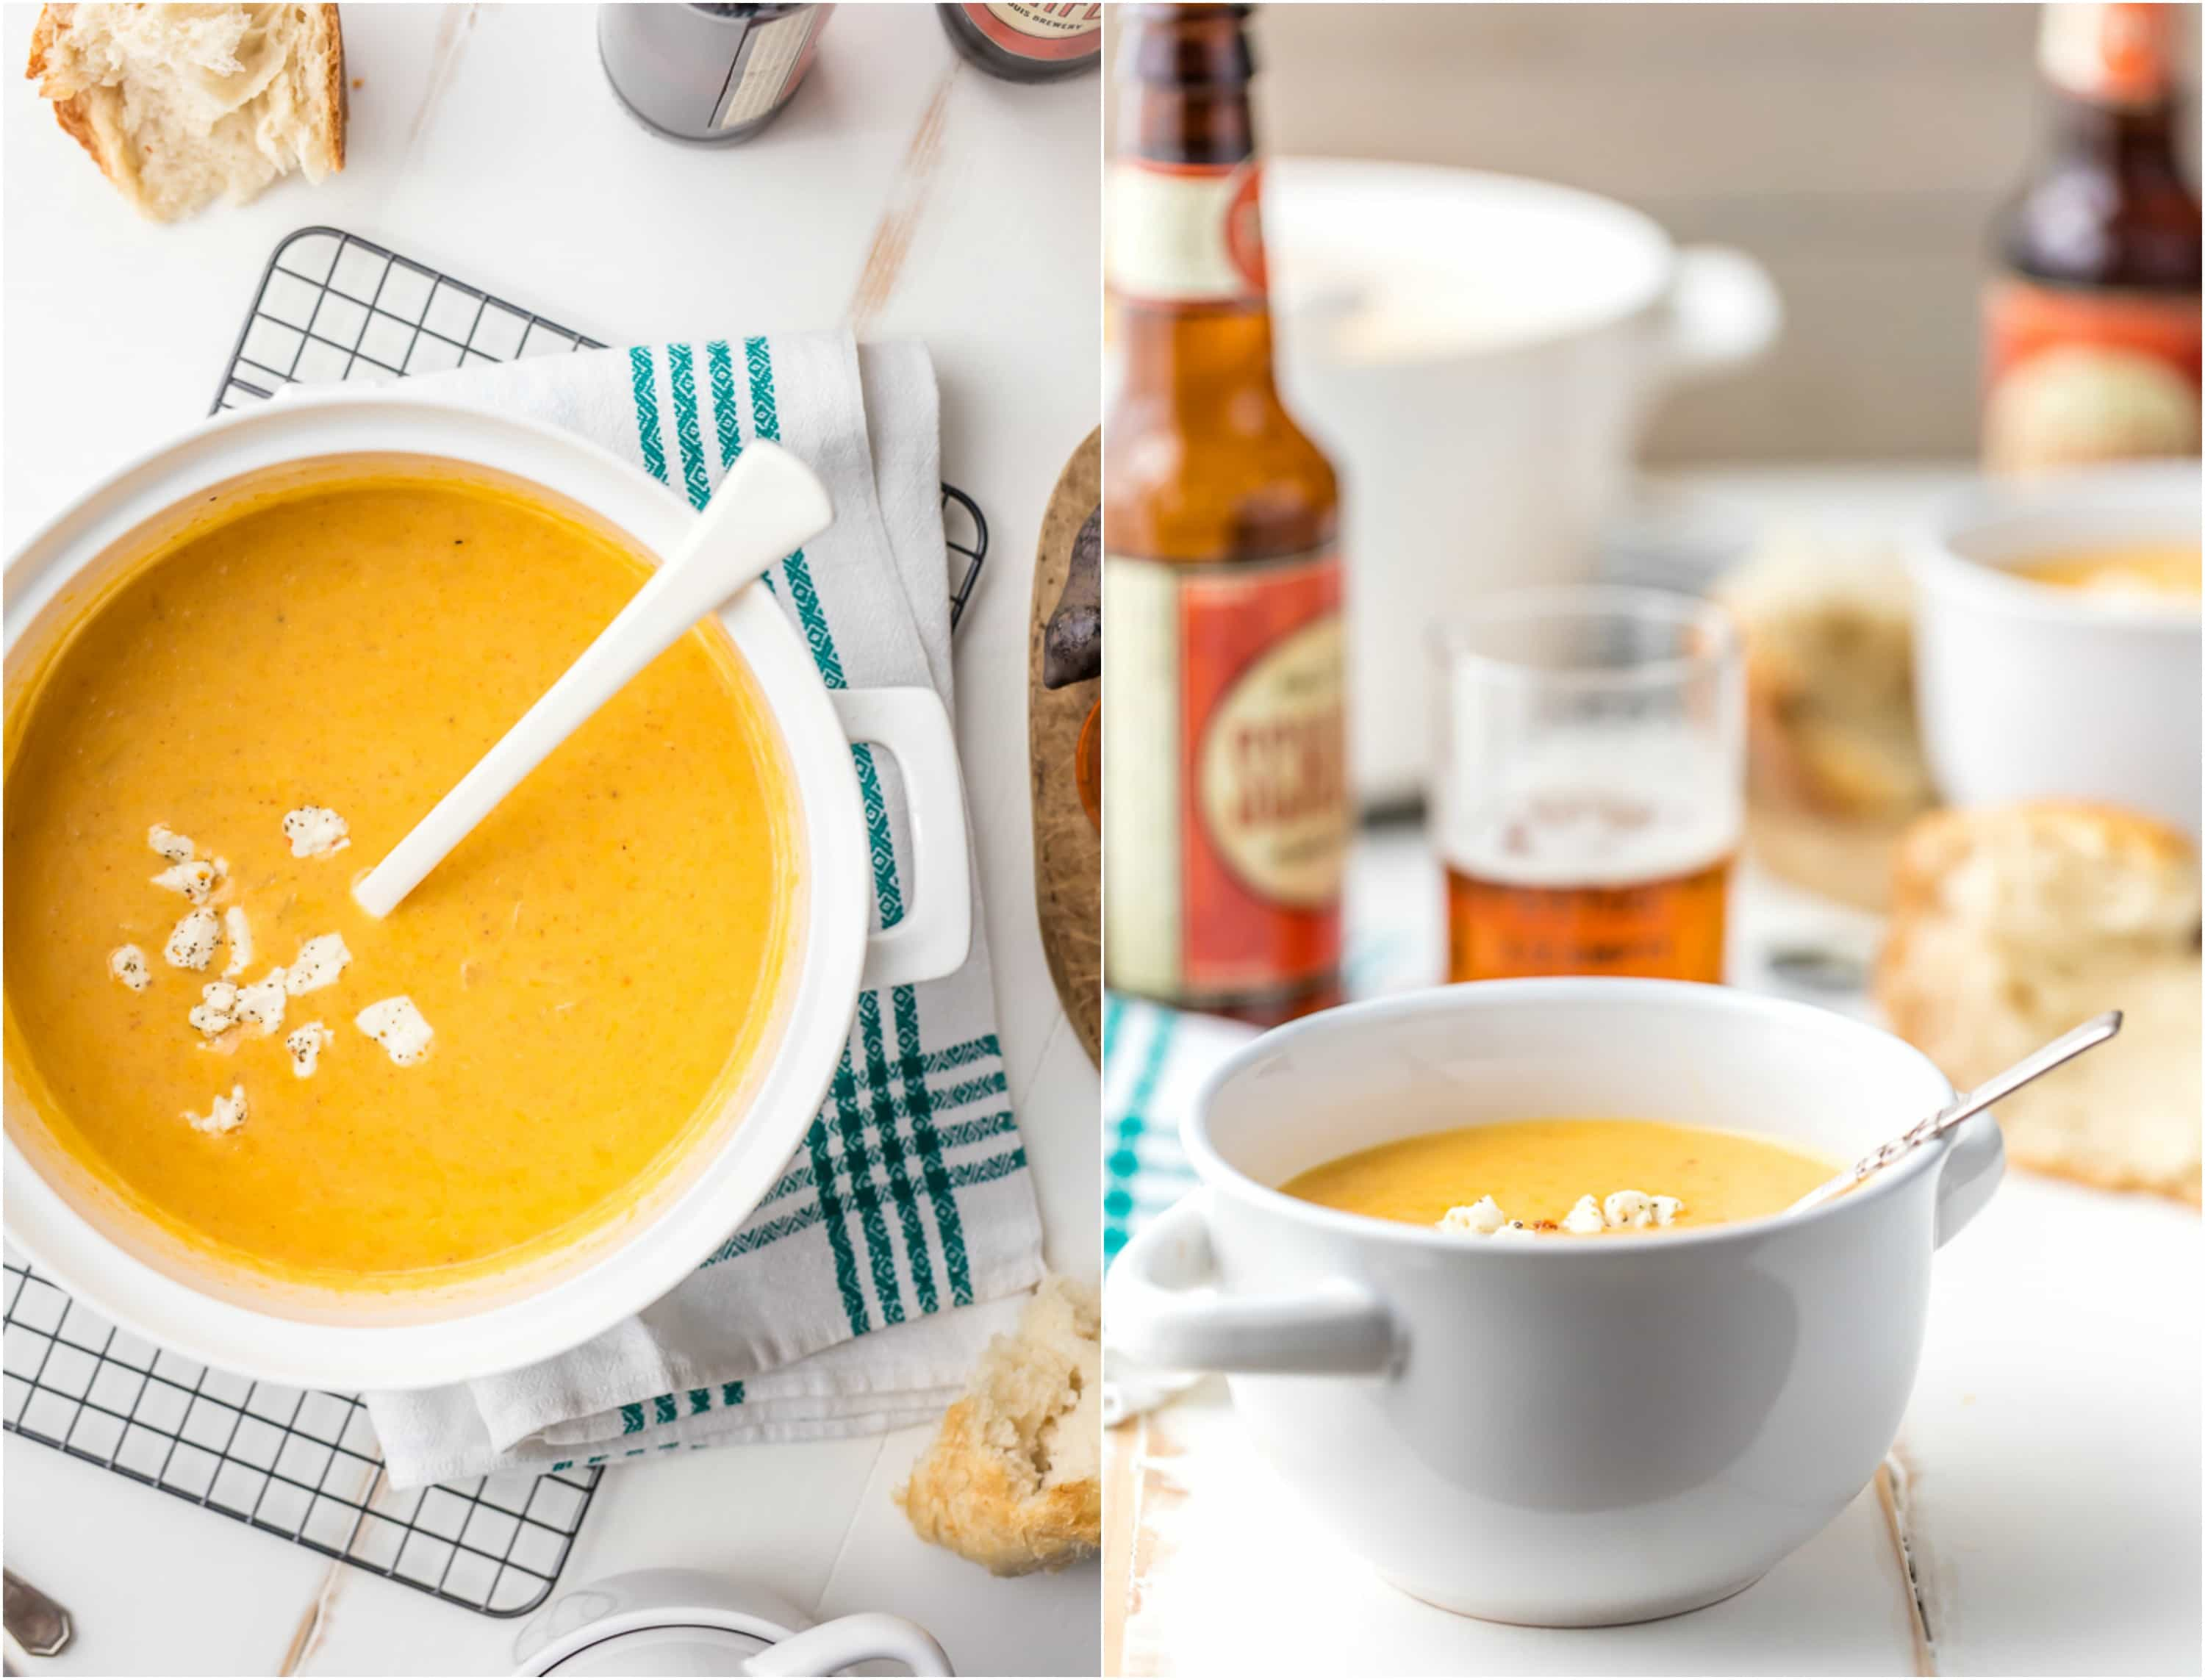 Beer Cheese Soup is delicious and made in just 15 minutes! This Beer Cheese Soup Recipe is a delicious, super quick soup recipe! This creamy comfort food is the perfect Winter easy dinner recipe! If you love cheese and love beer, this DELICIOUS Beer Cheese Soup is just for you.